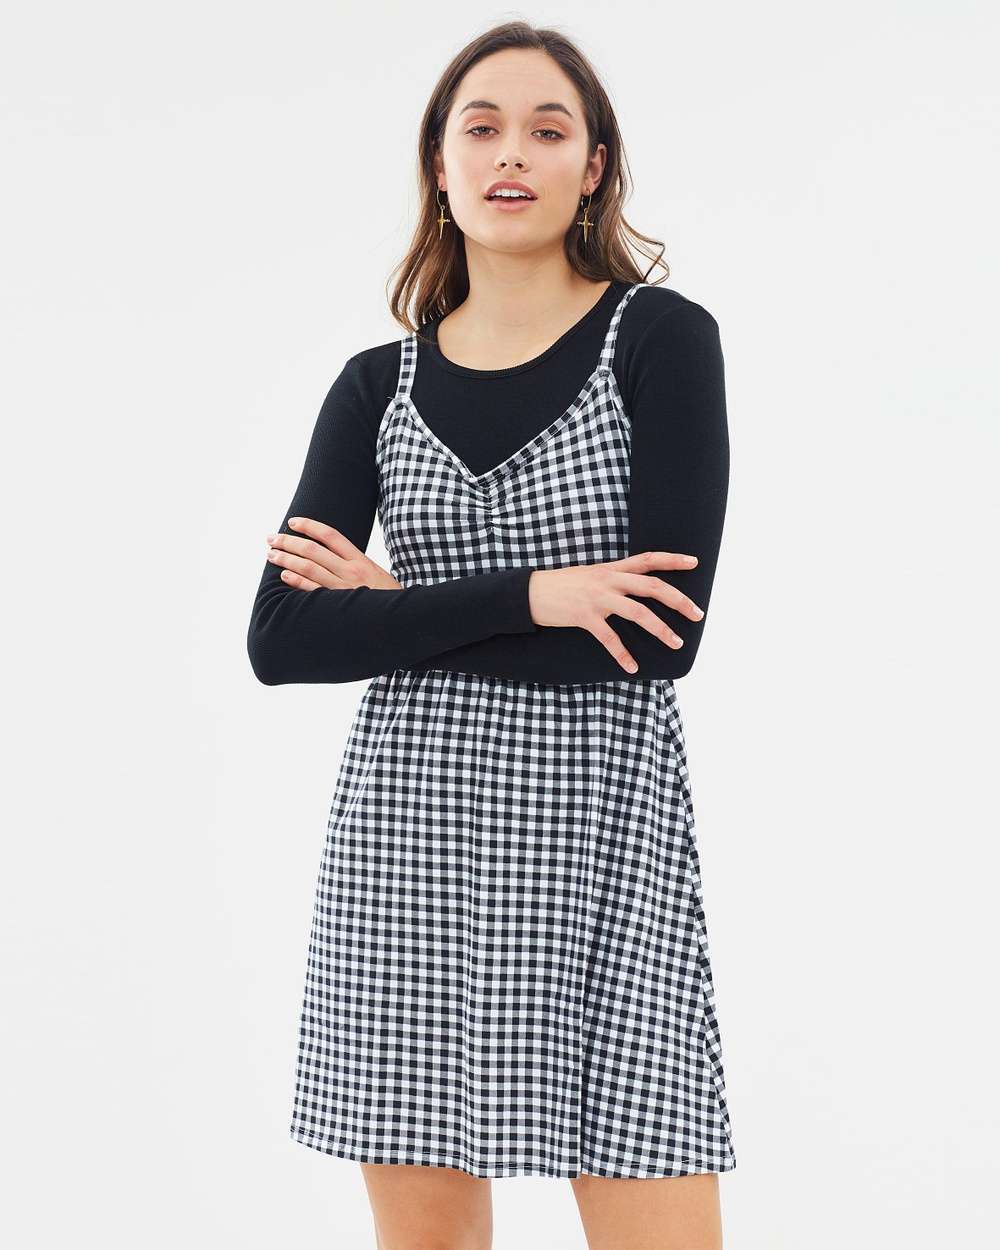 Dorothy Perkins Gingham Print Shift Dress Dresses Black & White Gingham Print Shift Dress